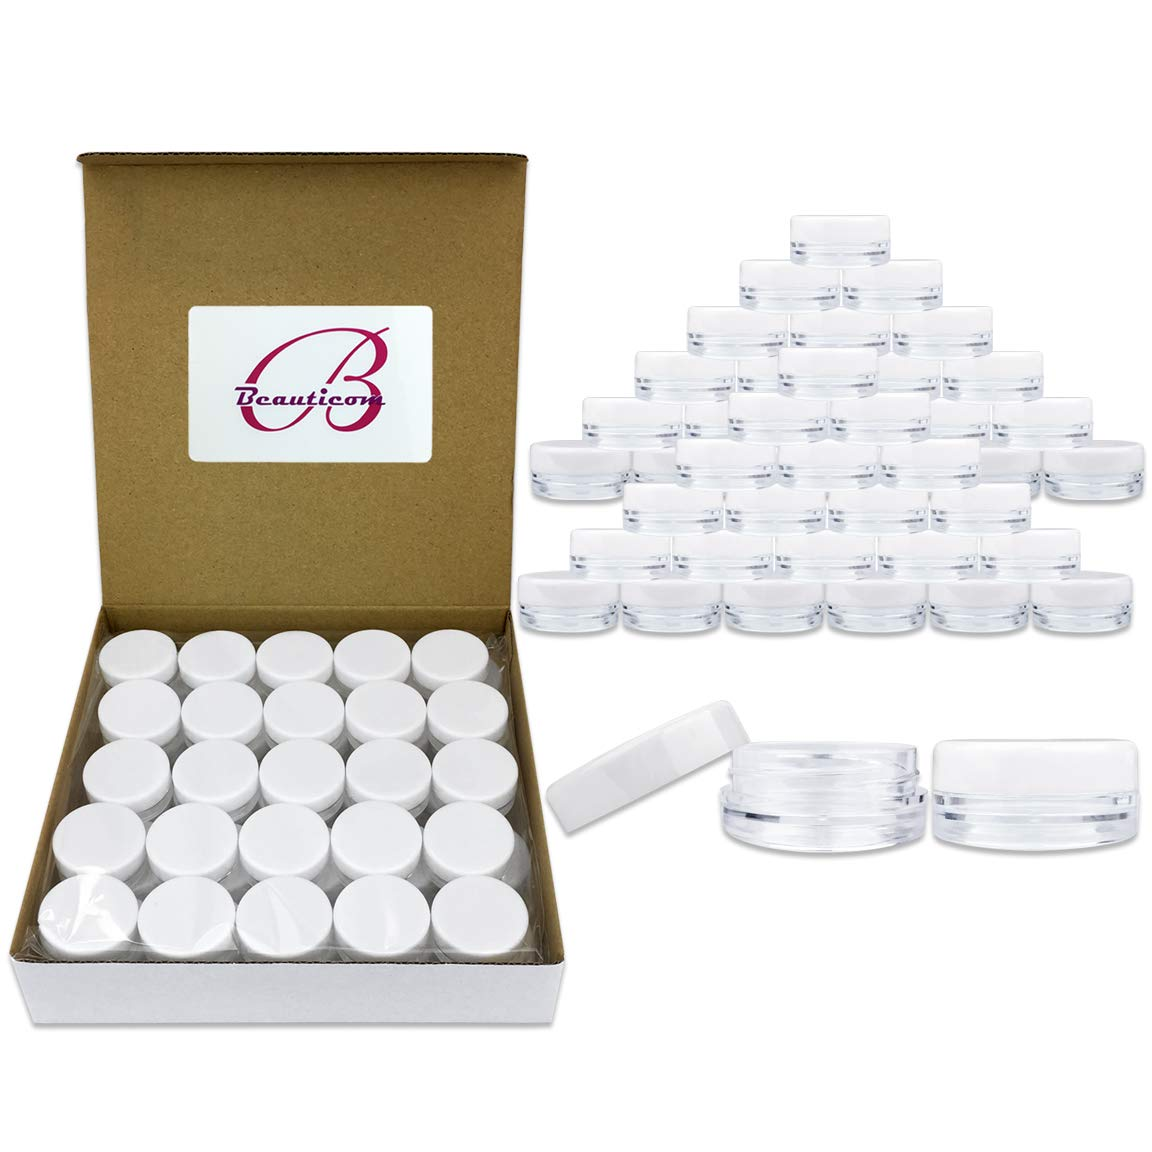 Quantity 100 Pieces Beauticom 3G 3ML Round Clear Jars with White Lids for Lotion, Creams, Toners, Lip Balms, Makeup Samples – BPA Free